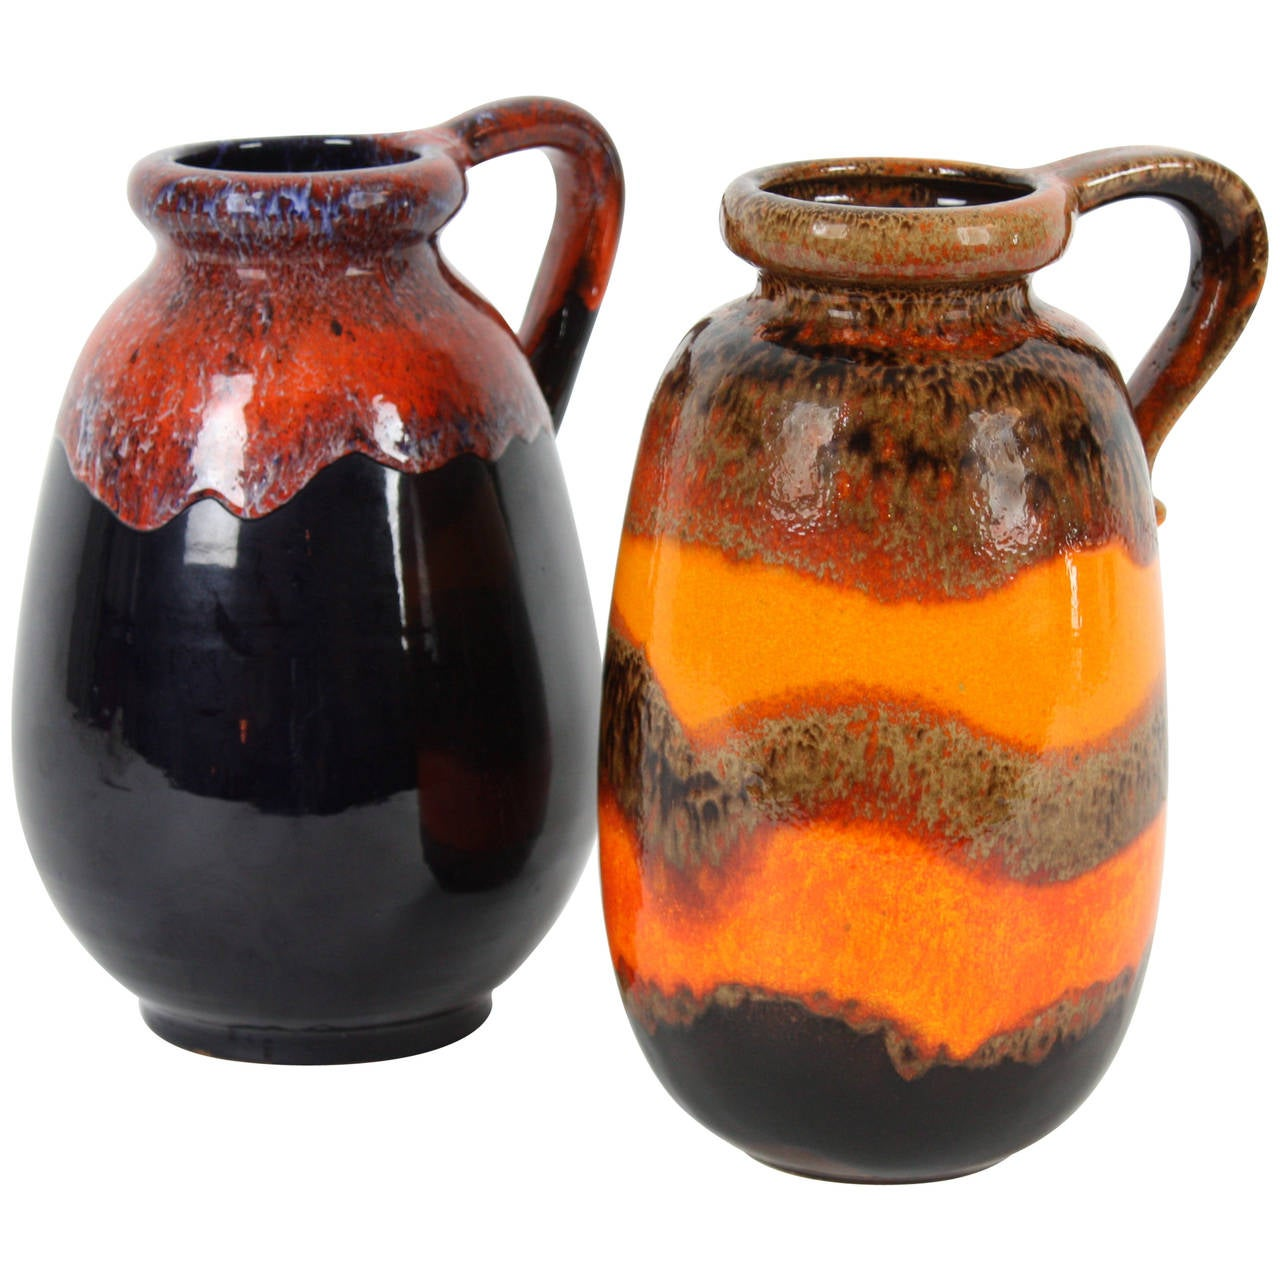 Duo of fat lava west germany pottery vases in vibrant orange and duo of fat lava west germany pottery vases in vibrant orange and dark colors for sale reviewsmspy